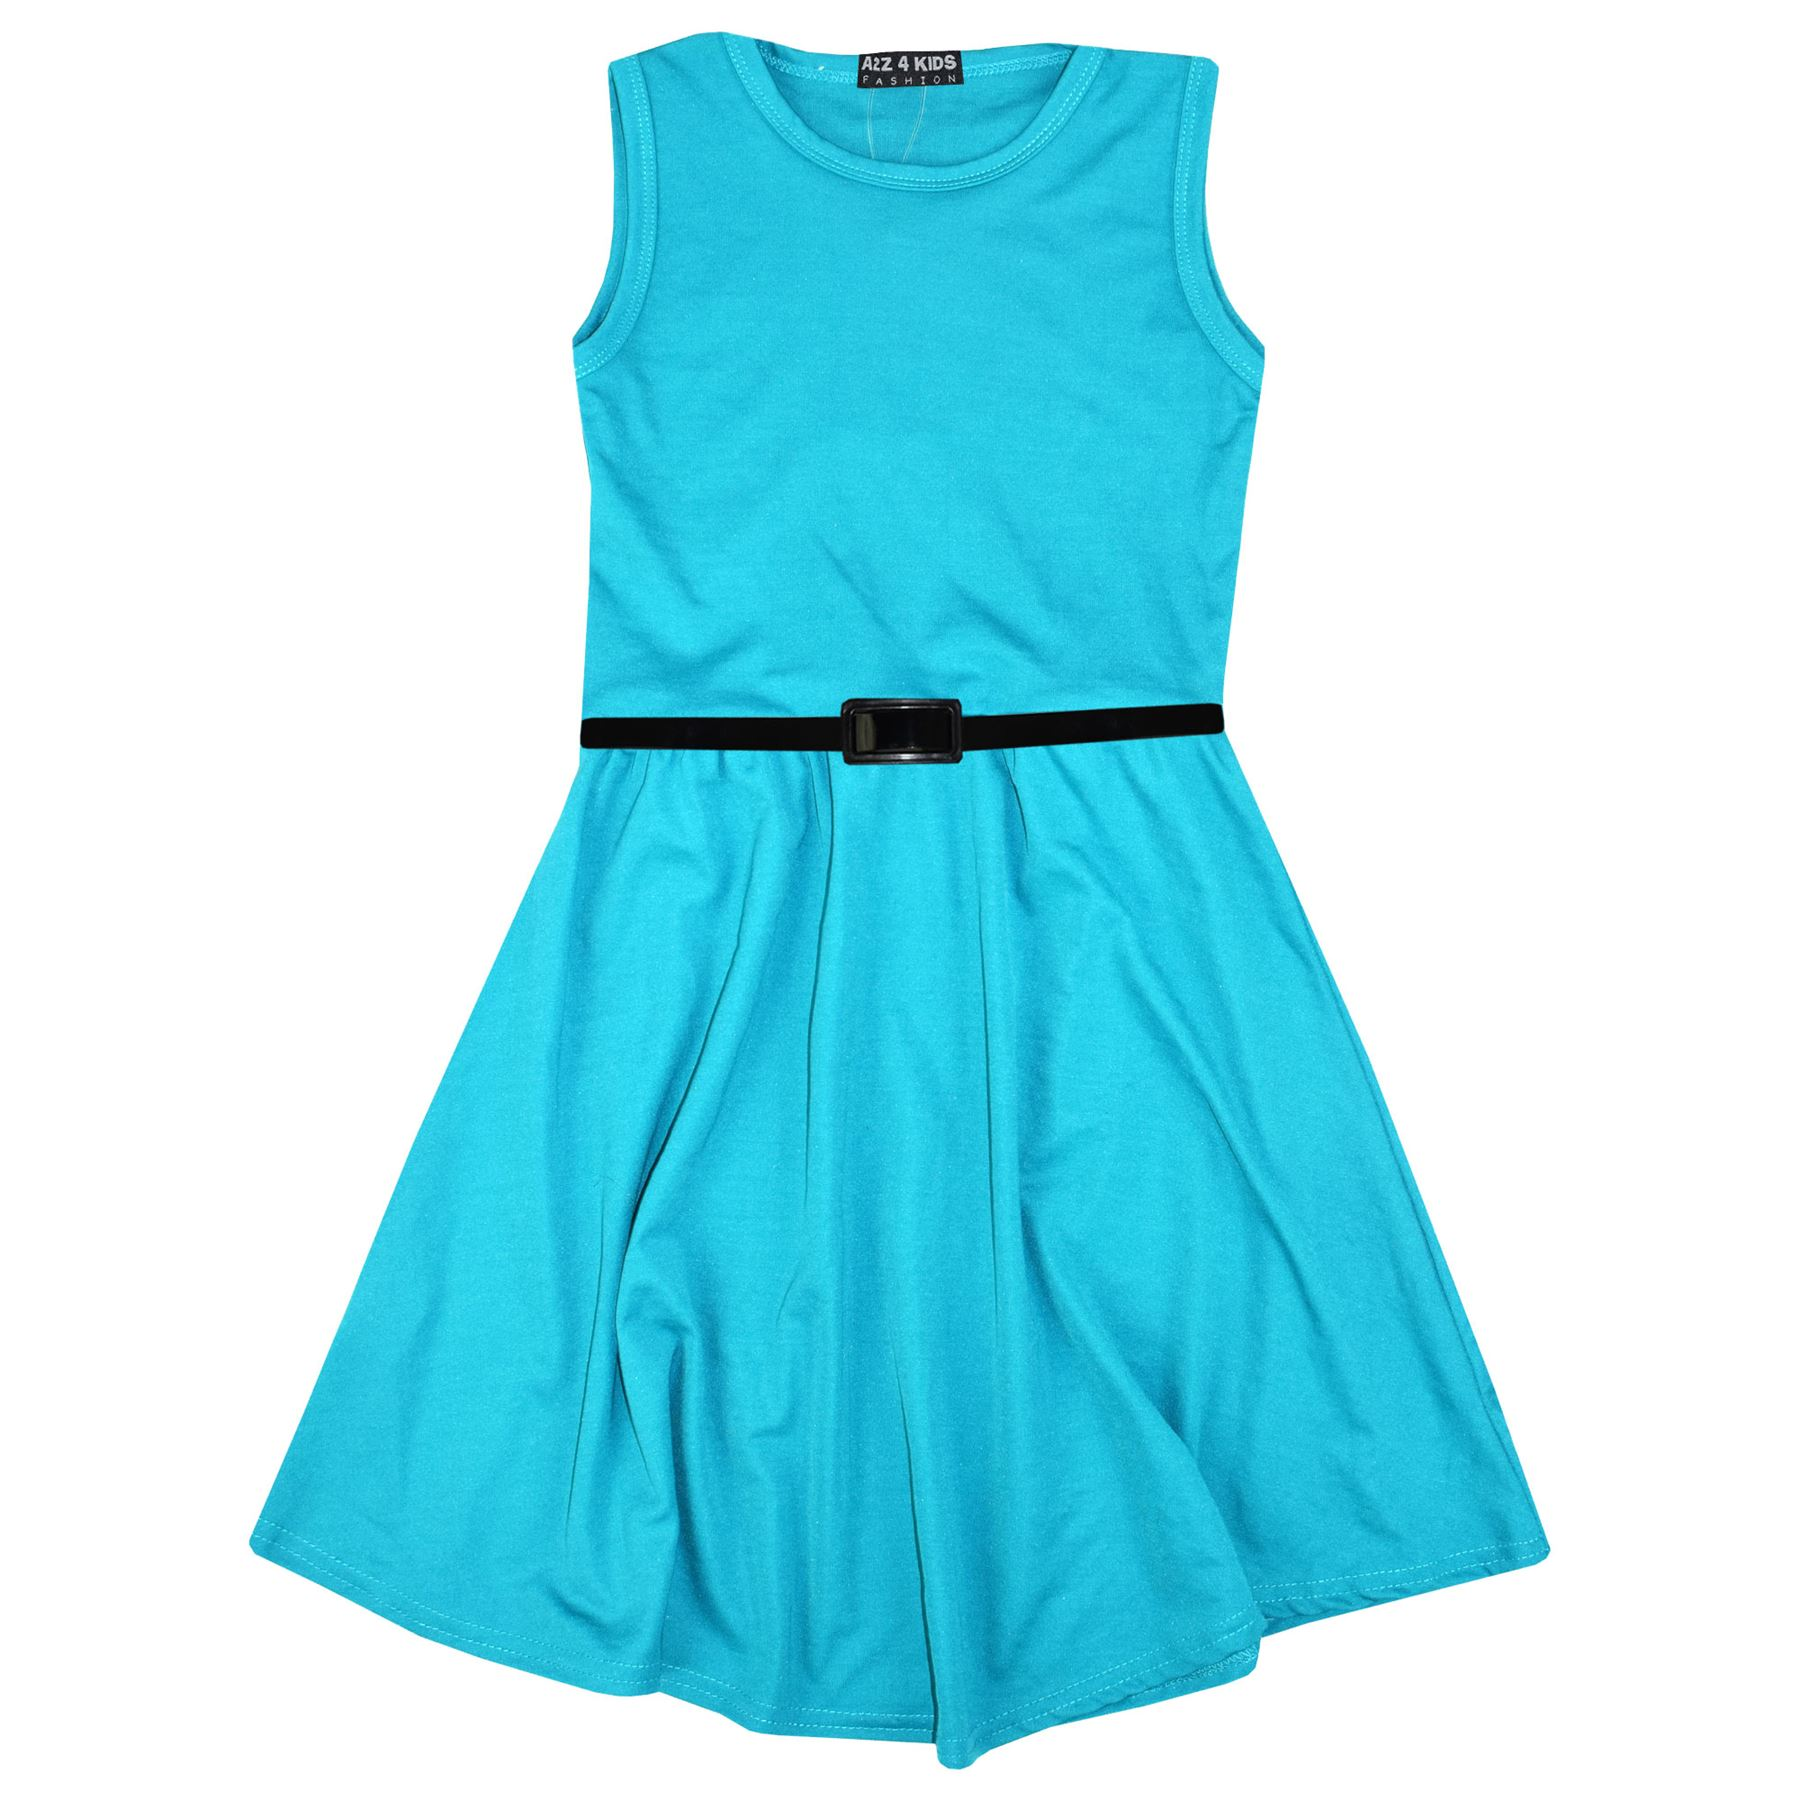 Girls-Skater-Dress-Kids-Party-Dresses-With-Free-Belt-5-6-7-8-9-10-11-12-13-Years miniatuur 81